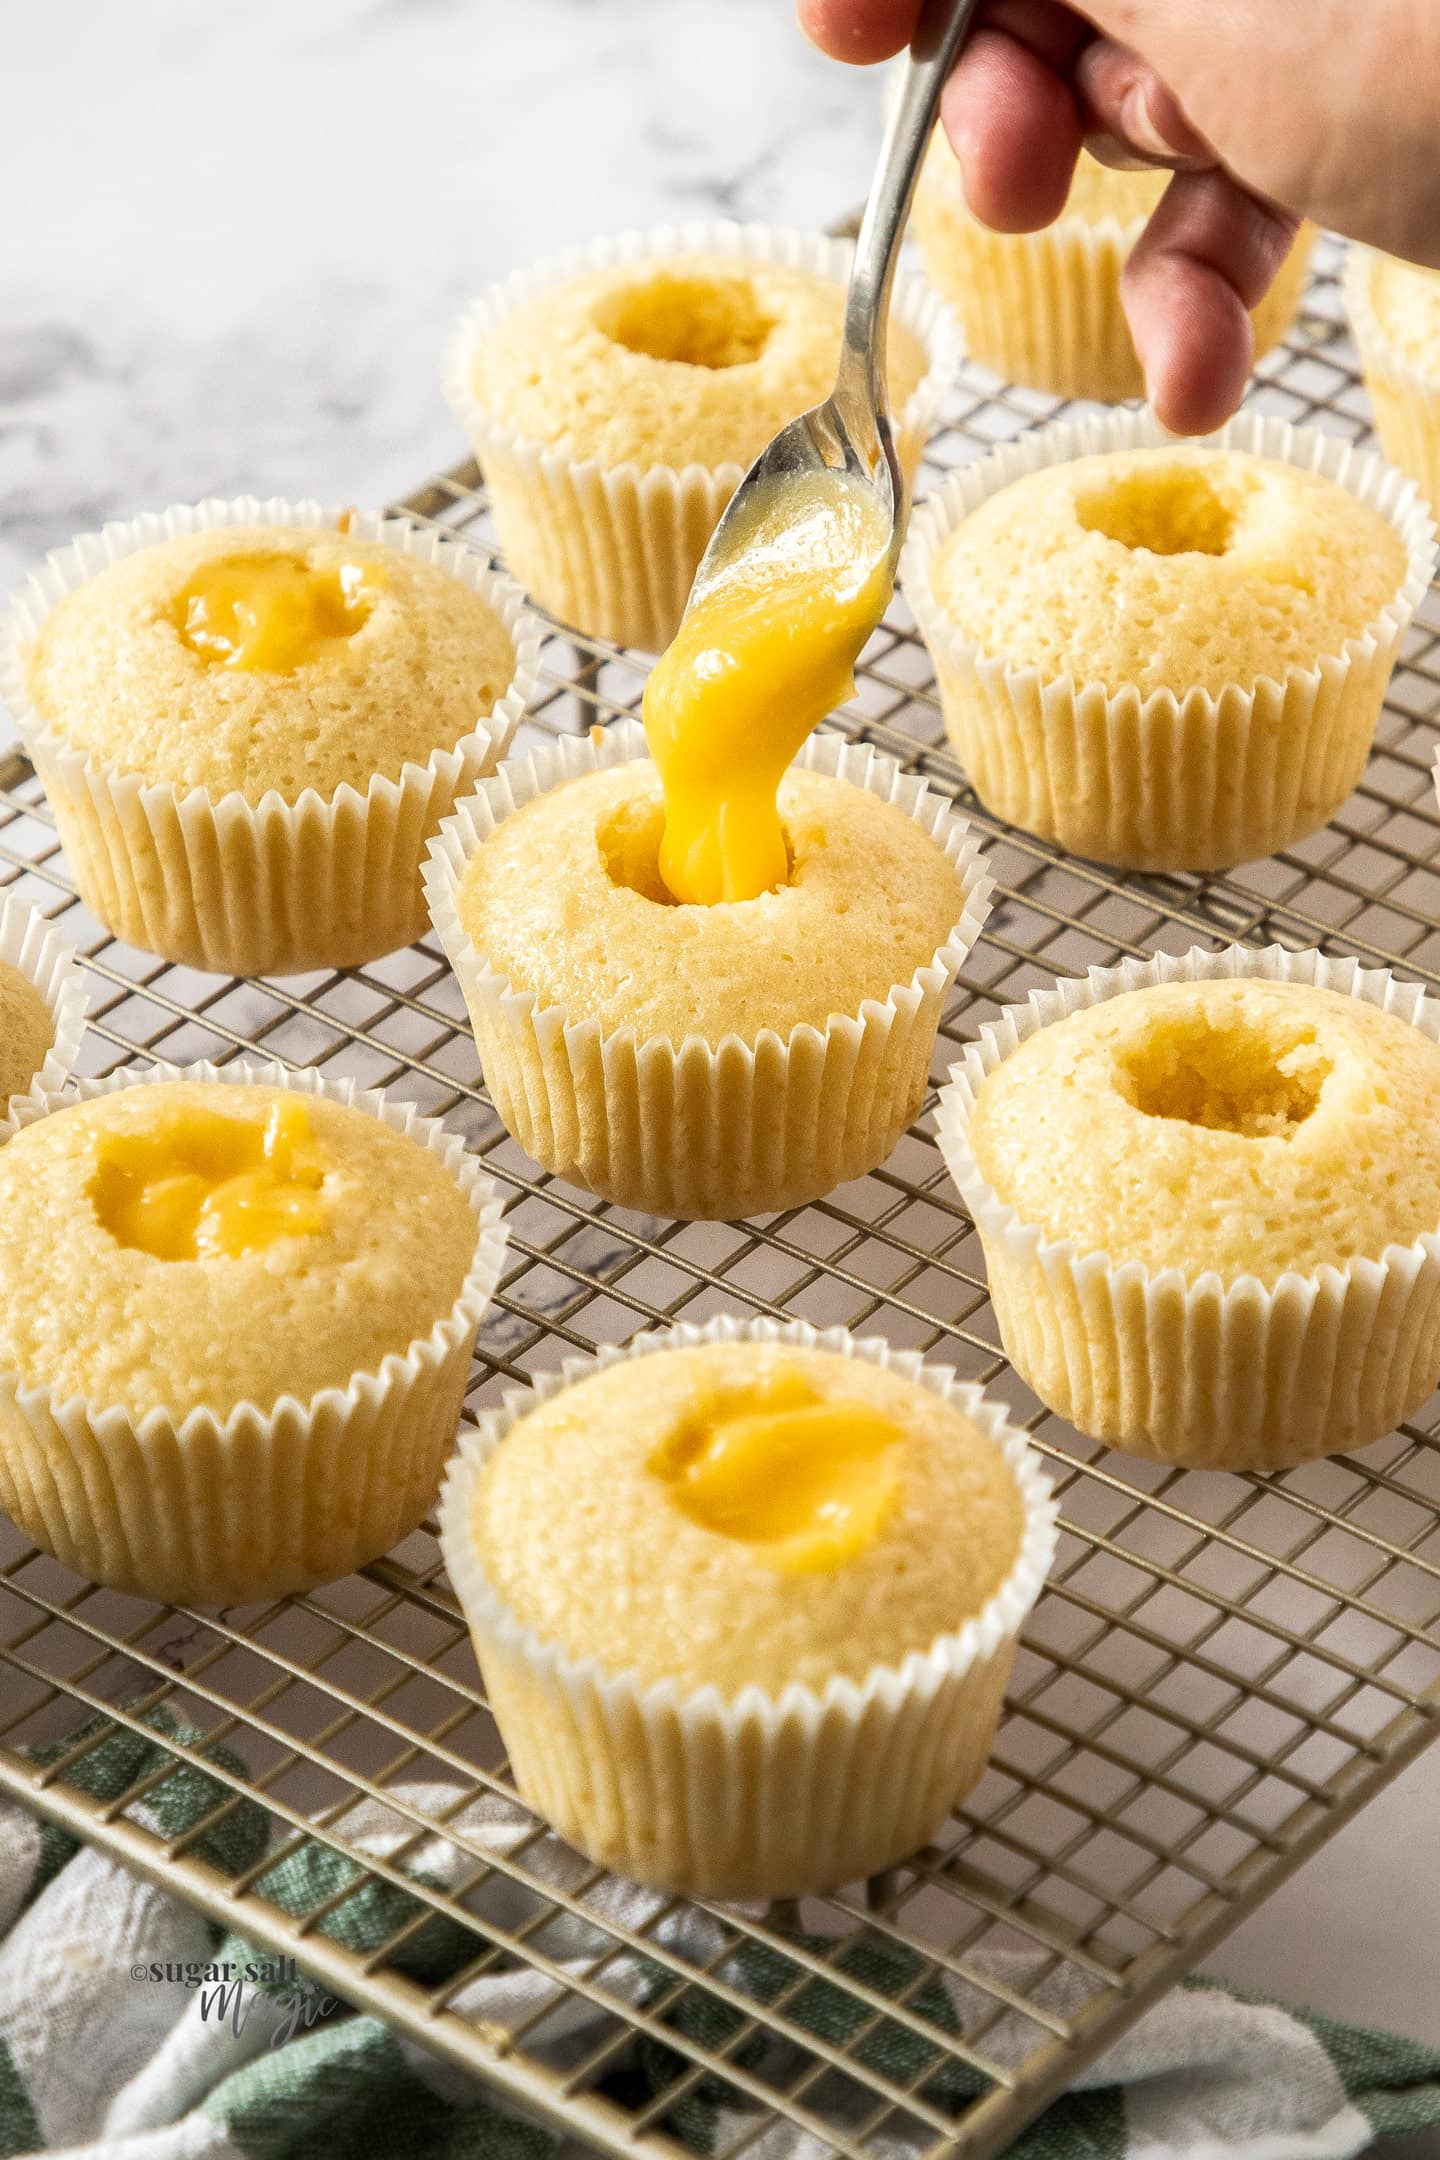 Pineapple curd being spooned into the centre of cupcakes